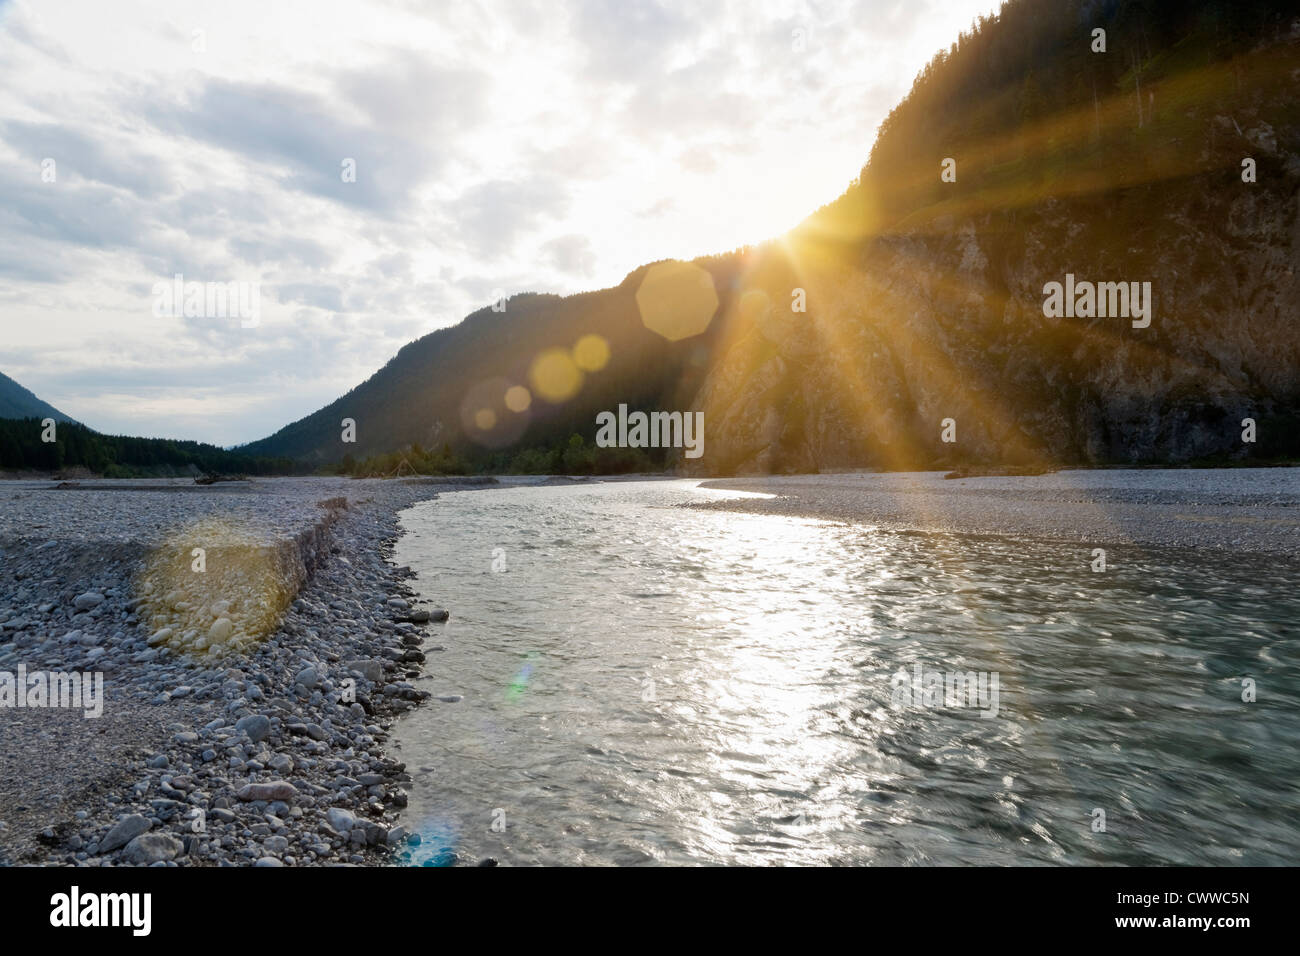 Sun setting over rocky river - Stock Image